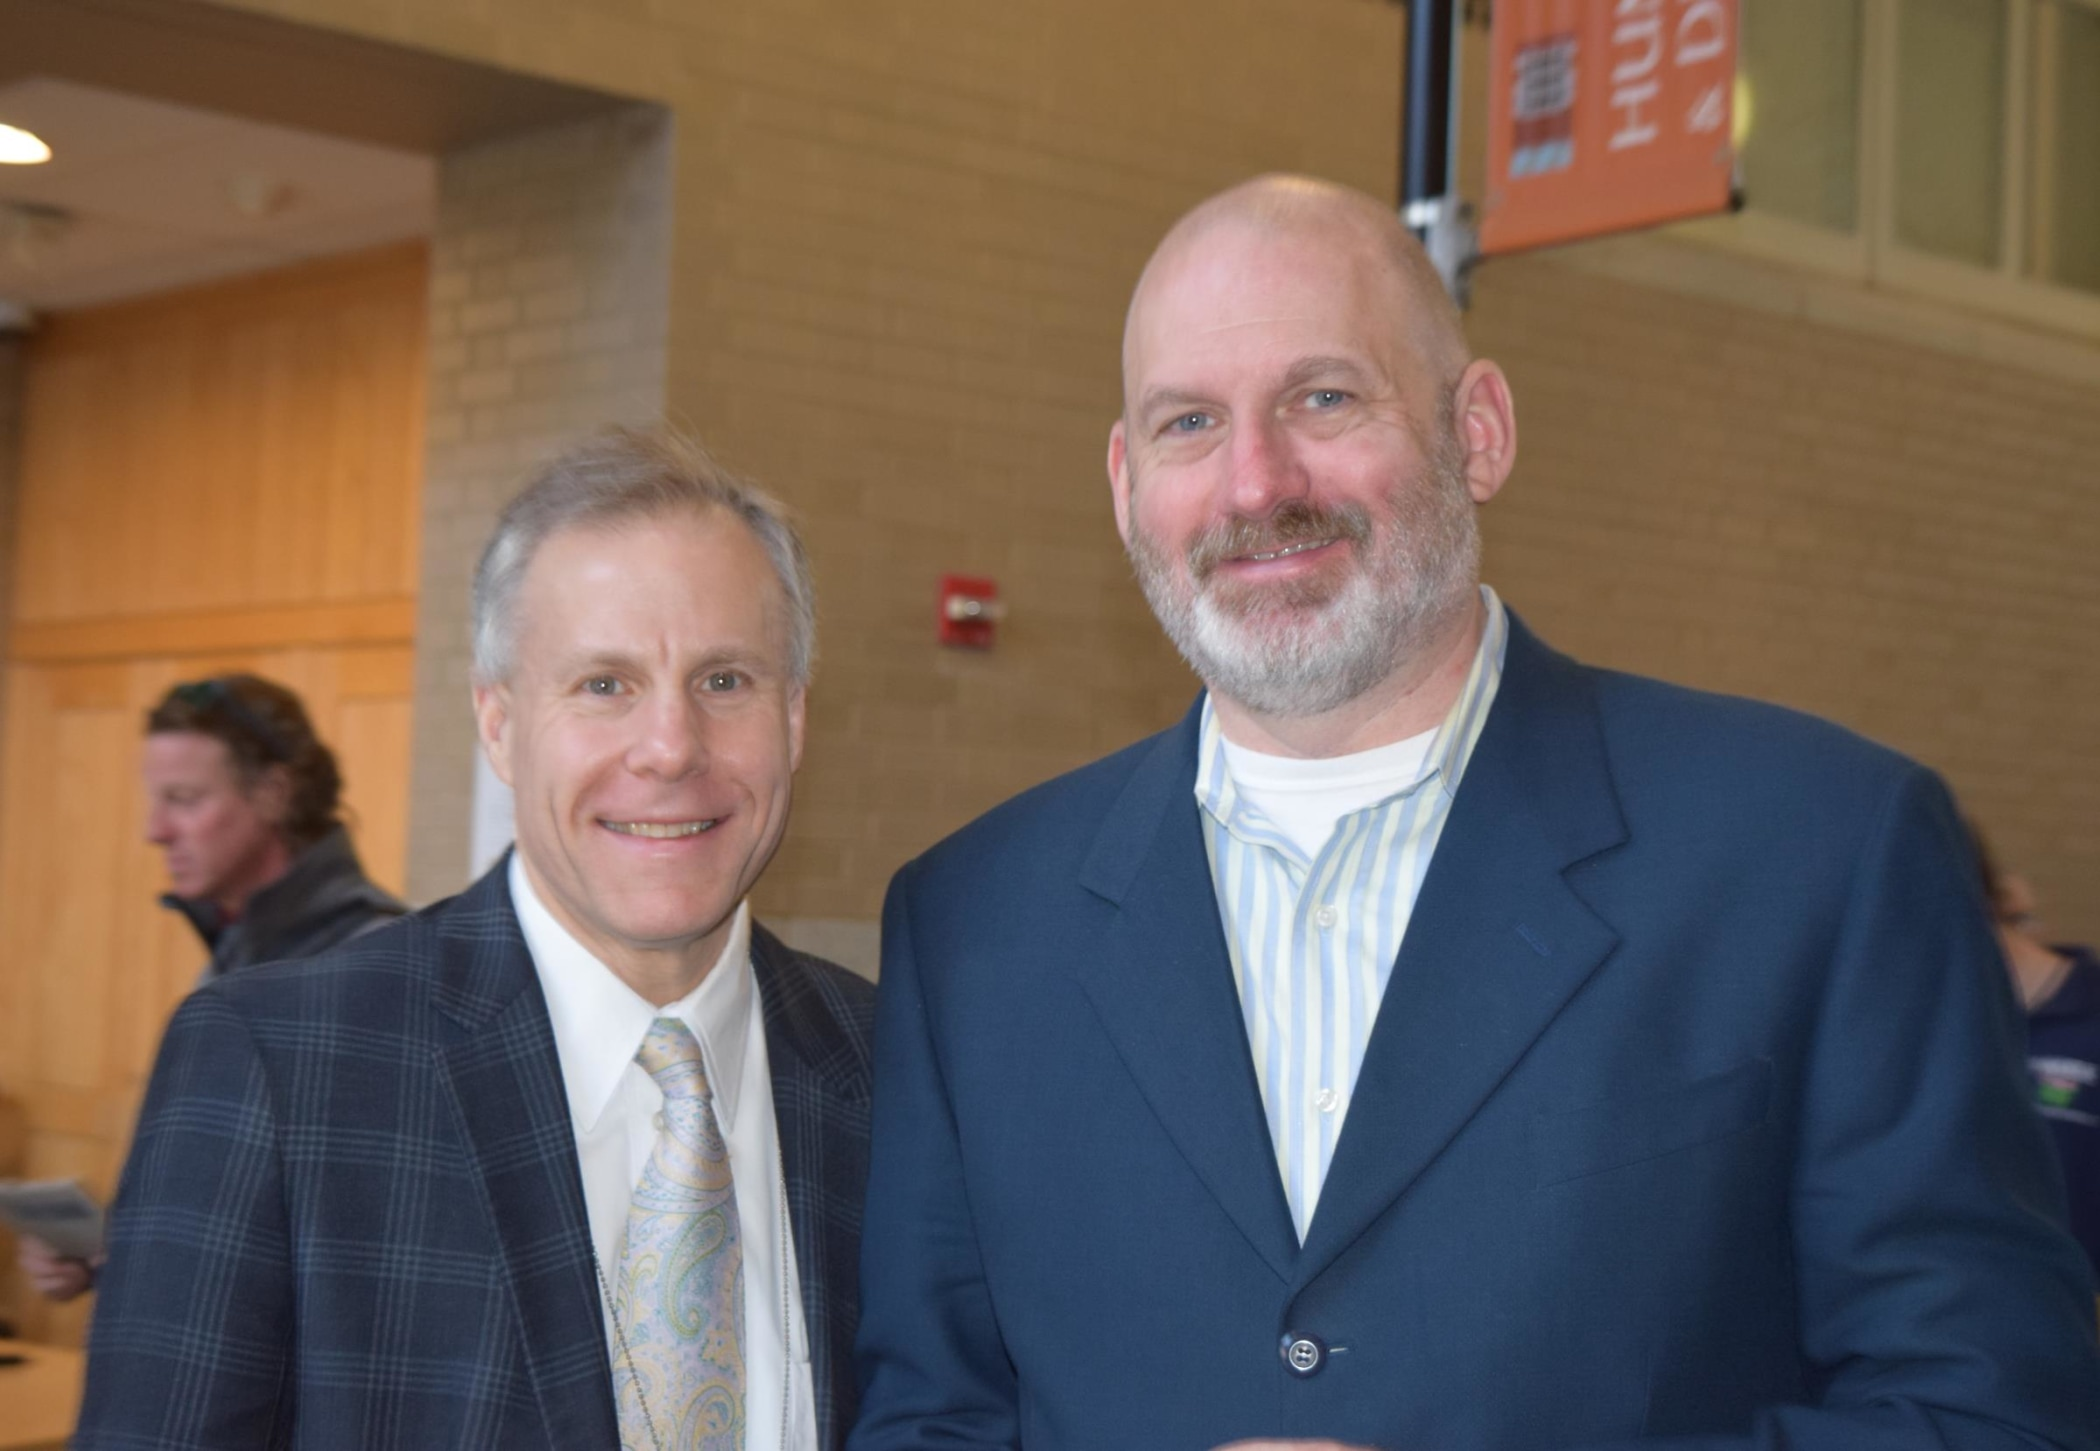 Dr. Steve Bernstein, Director of YCIS, and Dr. Geoff Curran